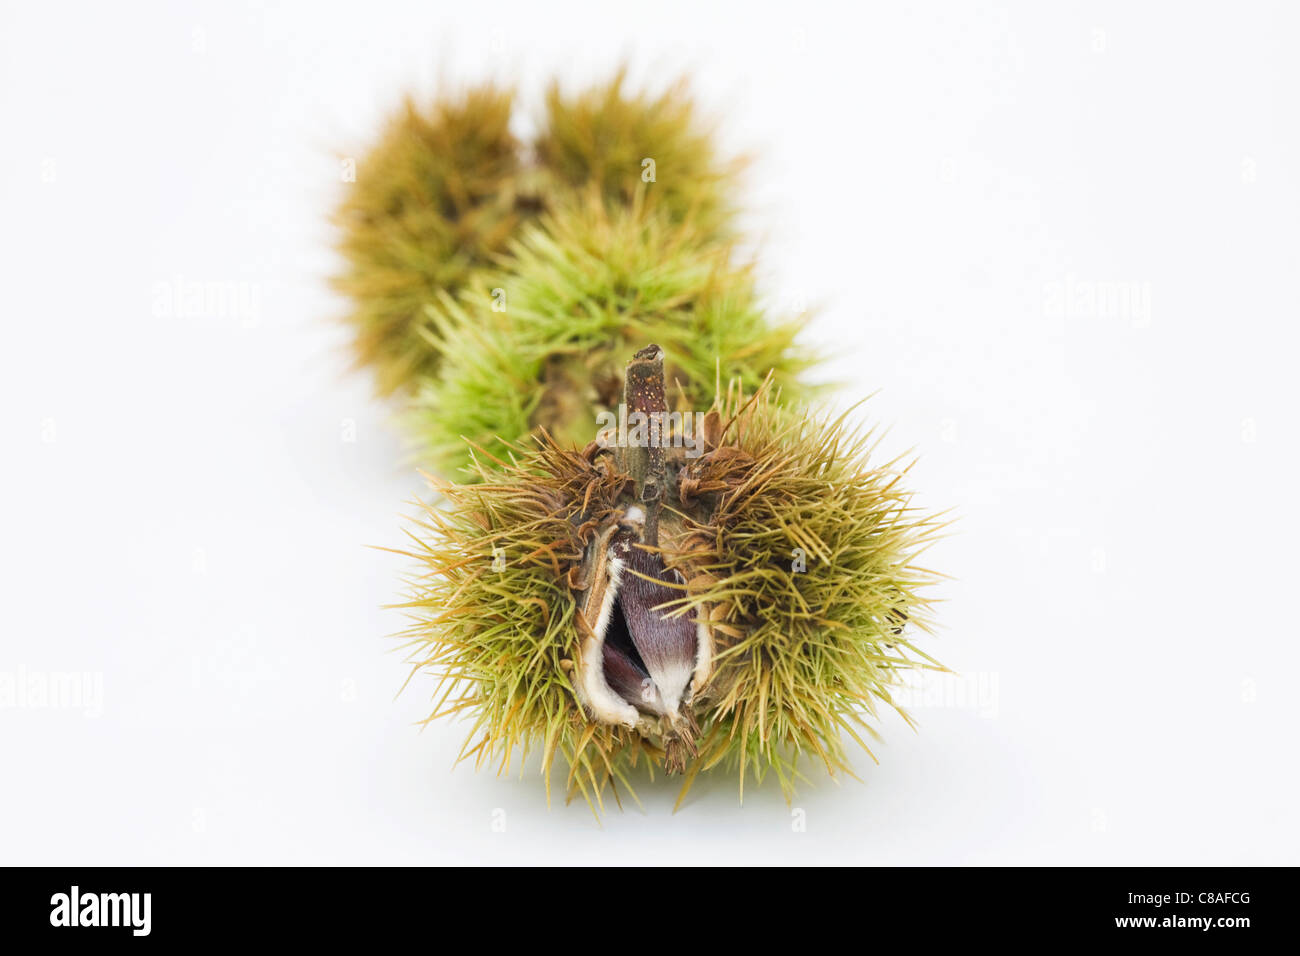 Castanea sativa. Sweet Chestnuts isolated on a white background. Stock Photo